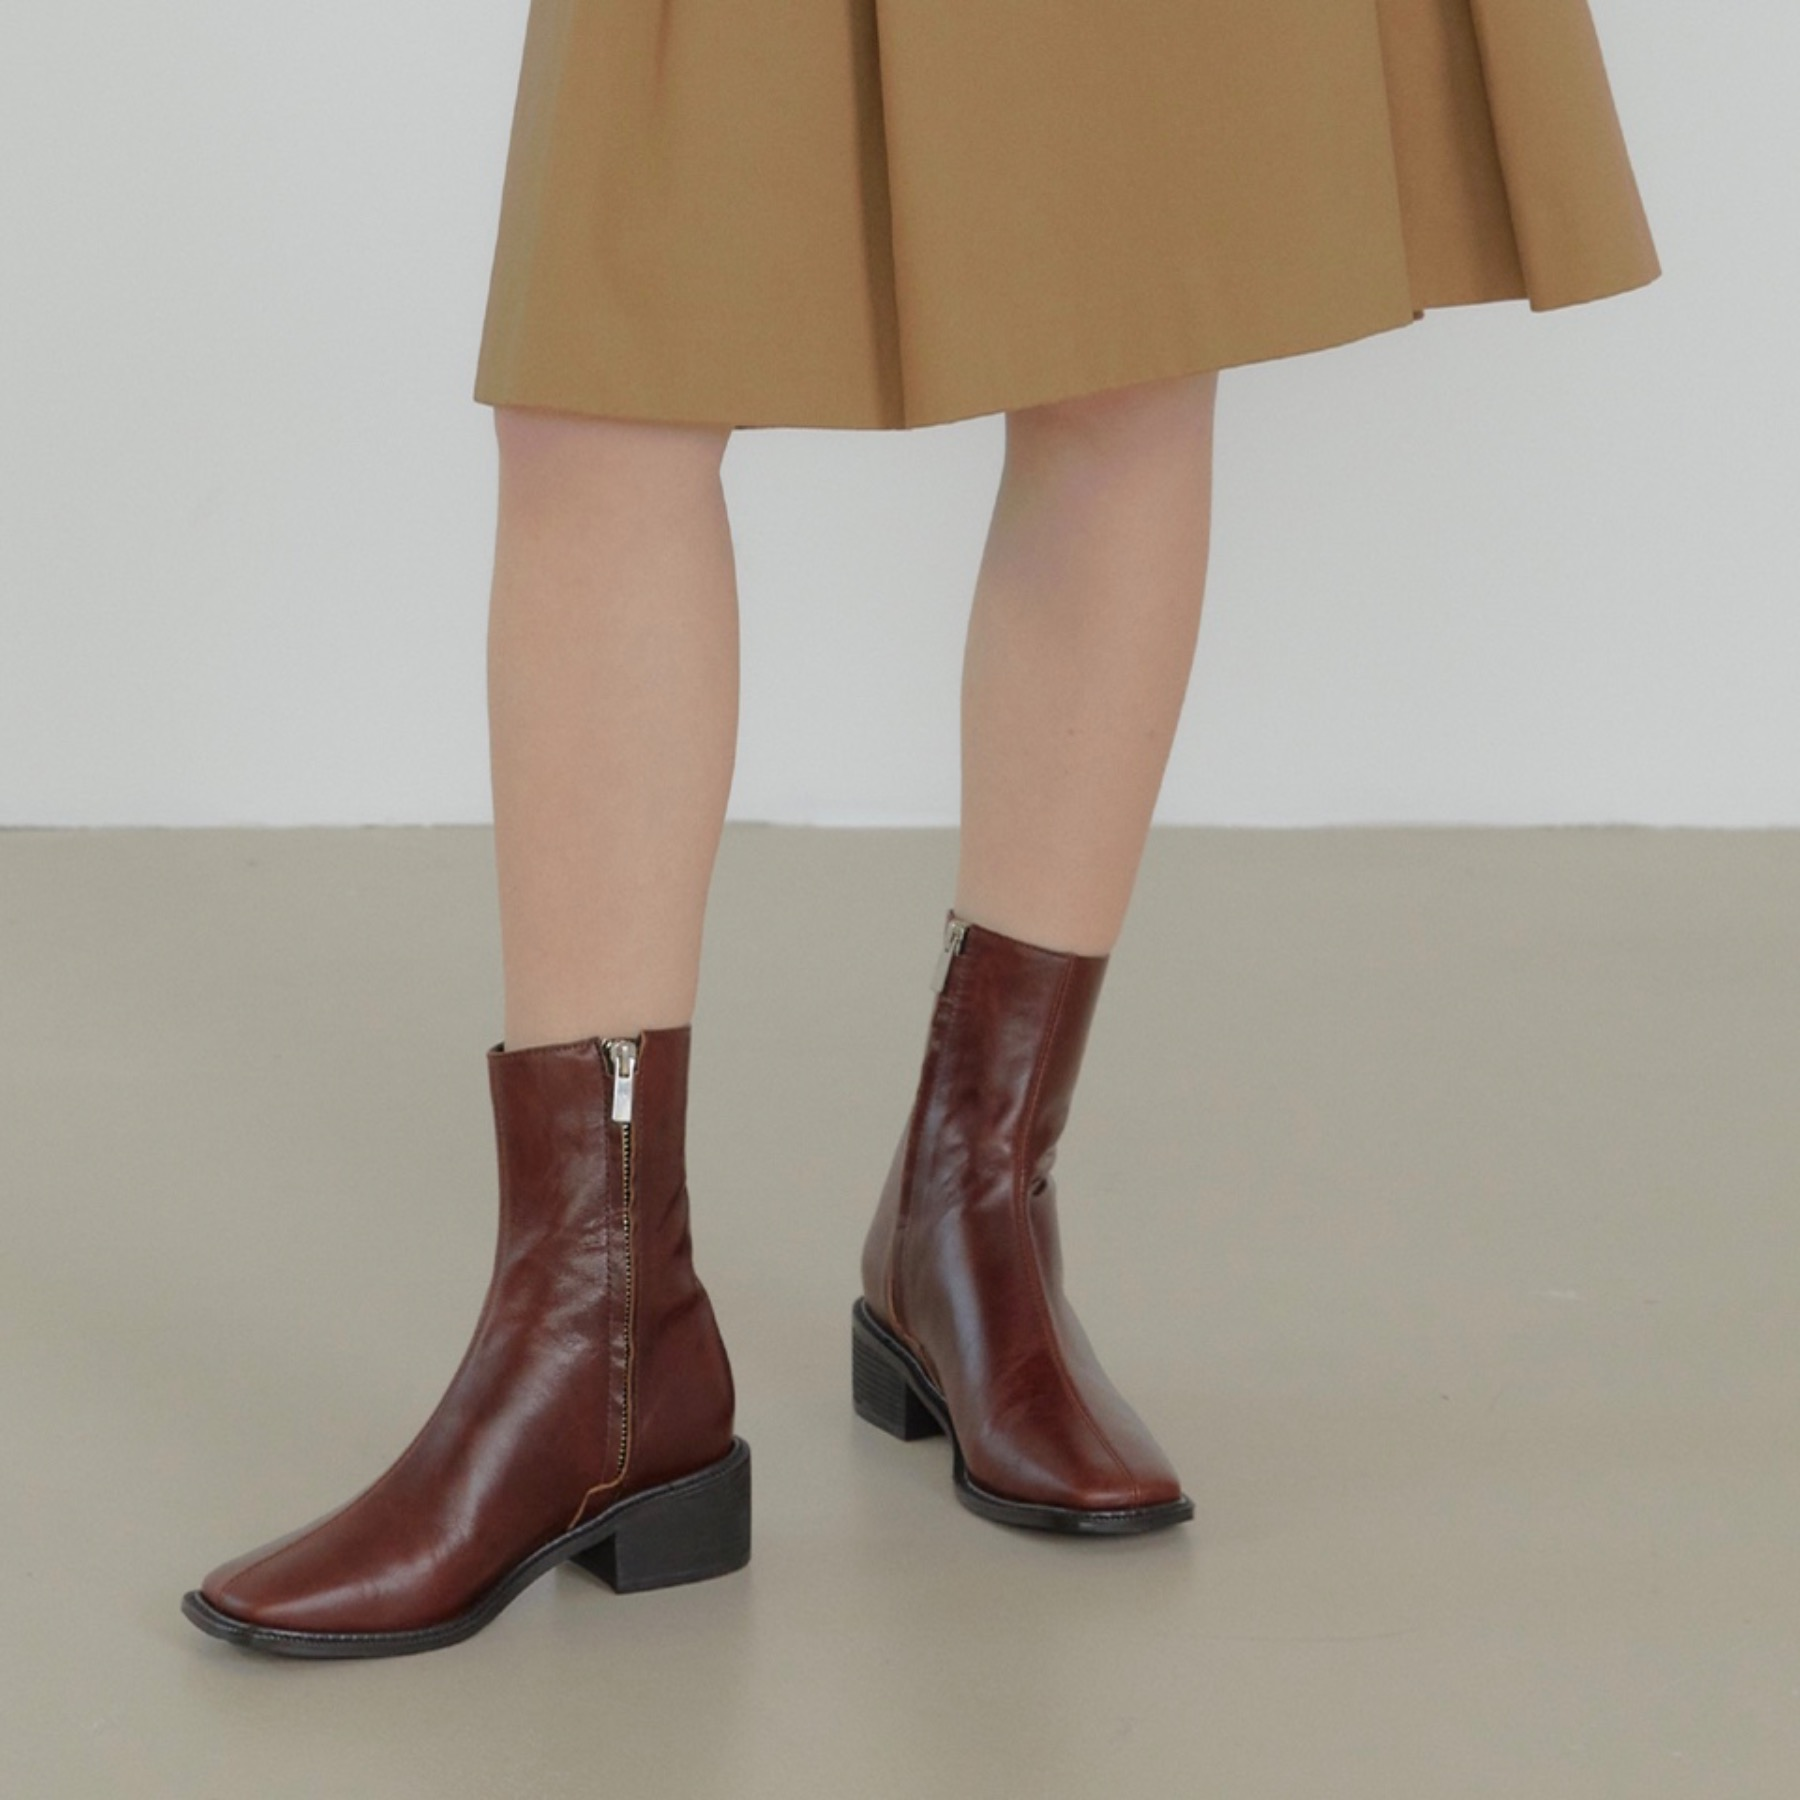 raya ankle boots(2 color)